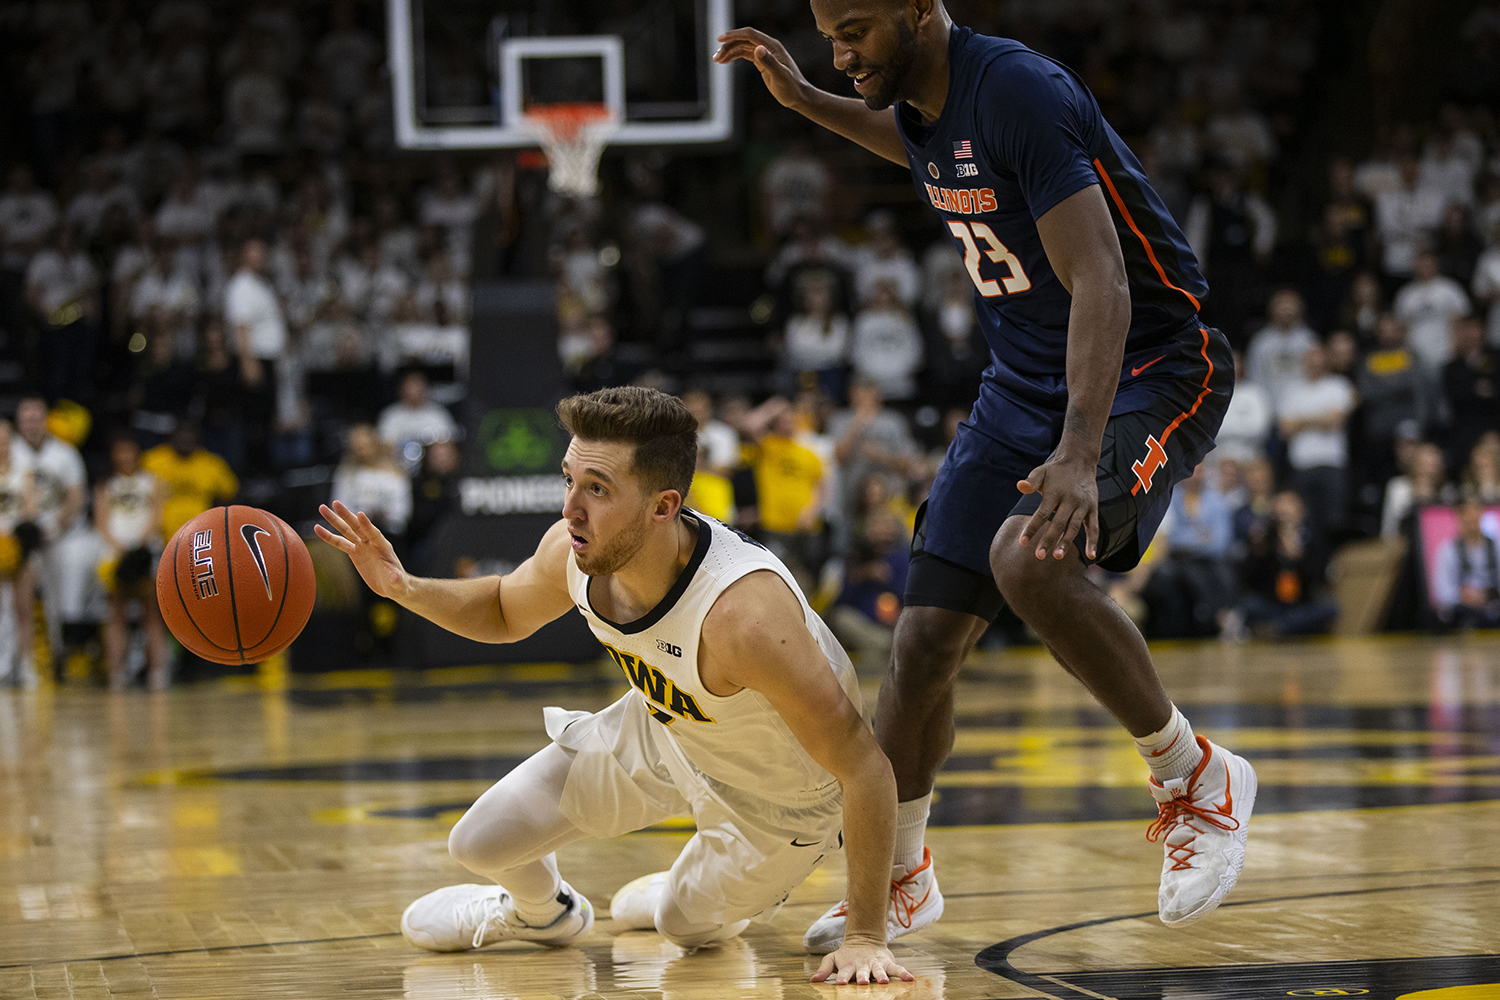 Iowa+guard+Jordan+Bohannon+falls+during+the+Iowa%2FIllinois+men%27s+basketball+game+at+Carver-Hawkeye+Arena+on+Sunday%2C+January+20%2C+2019.+The+Hawkeyes+defeated+the+Fighting+Illini%2C+95-71.+